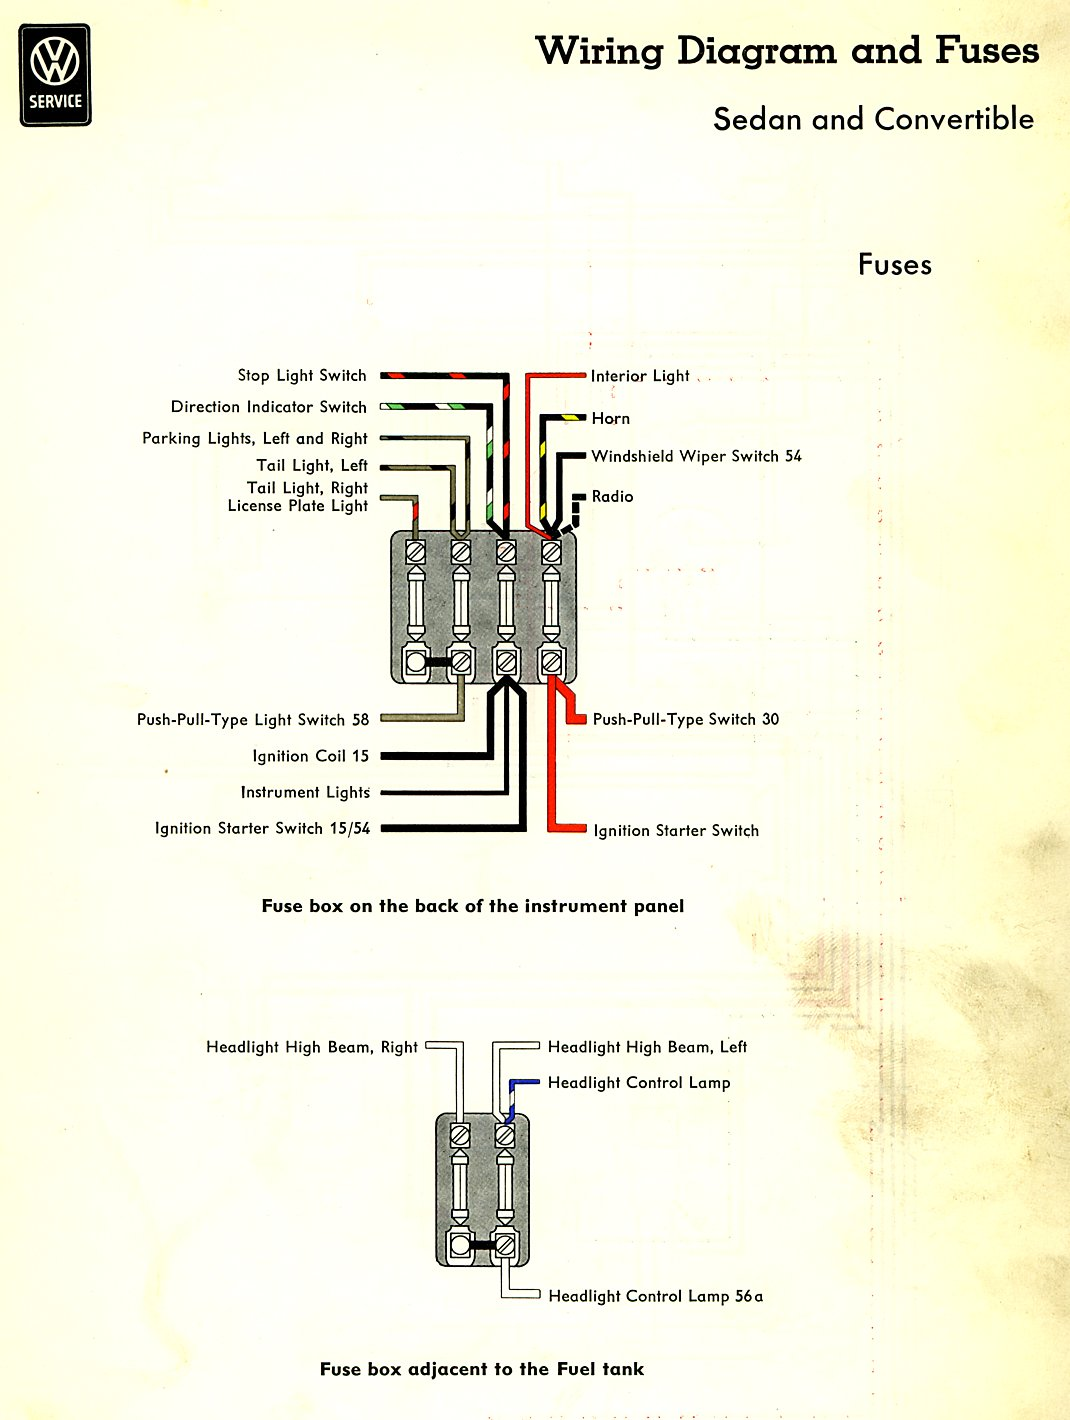 Type 1 Wiring Diagrams 1957 Ford Starter Solenoid Diagram